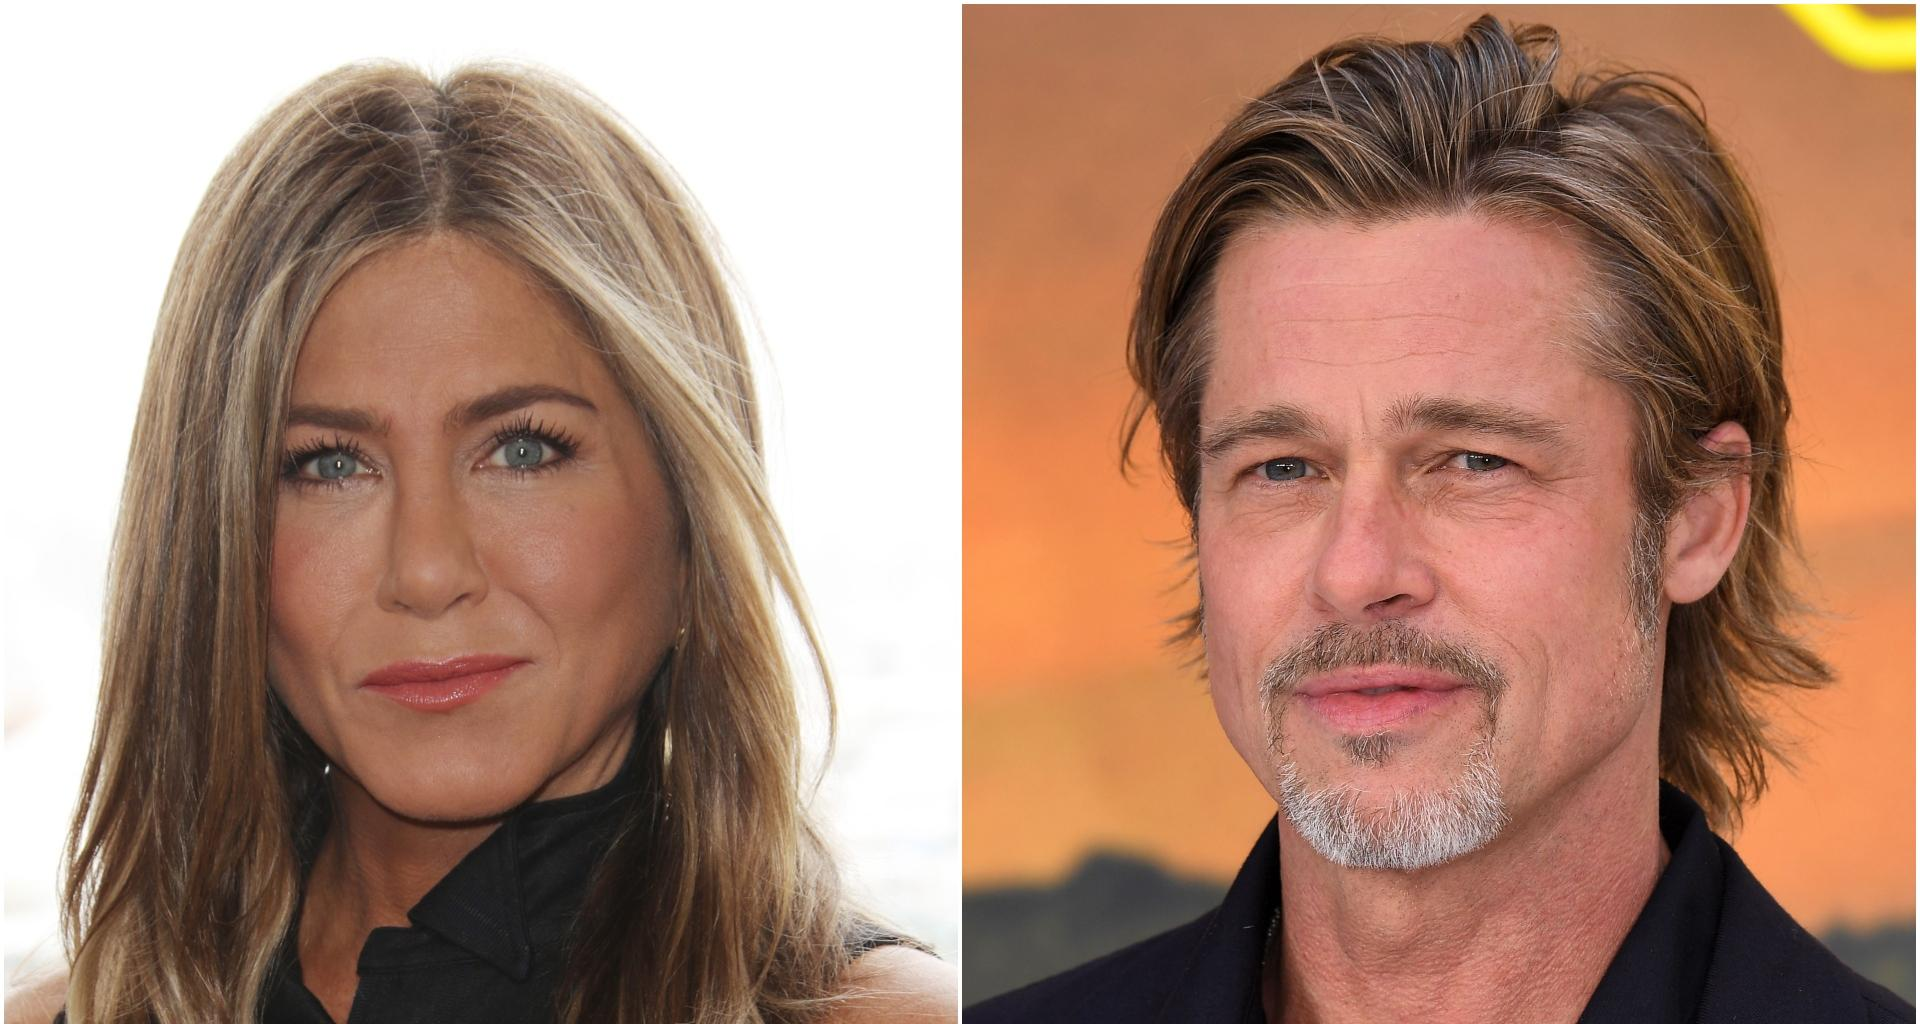 Brad Pitt And Jennifer Aniston To Sit Close At The Golden Globes - Here's How The Exes Feel About The Seating Chart!